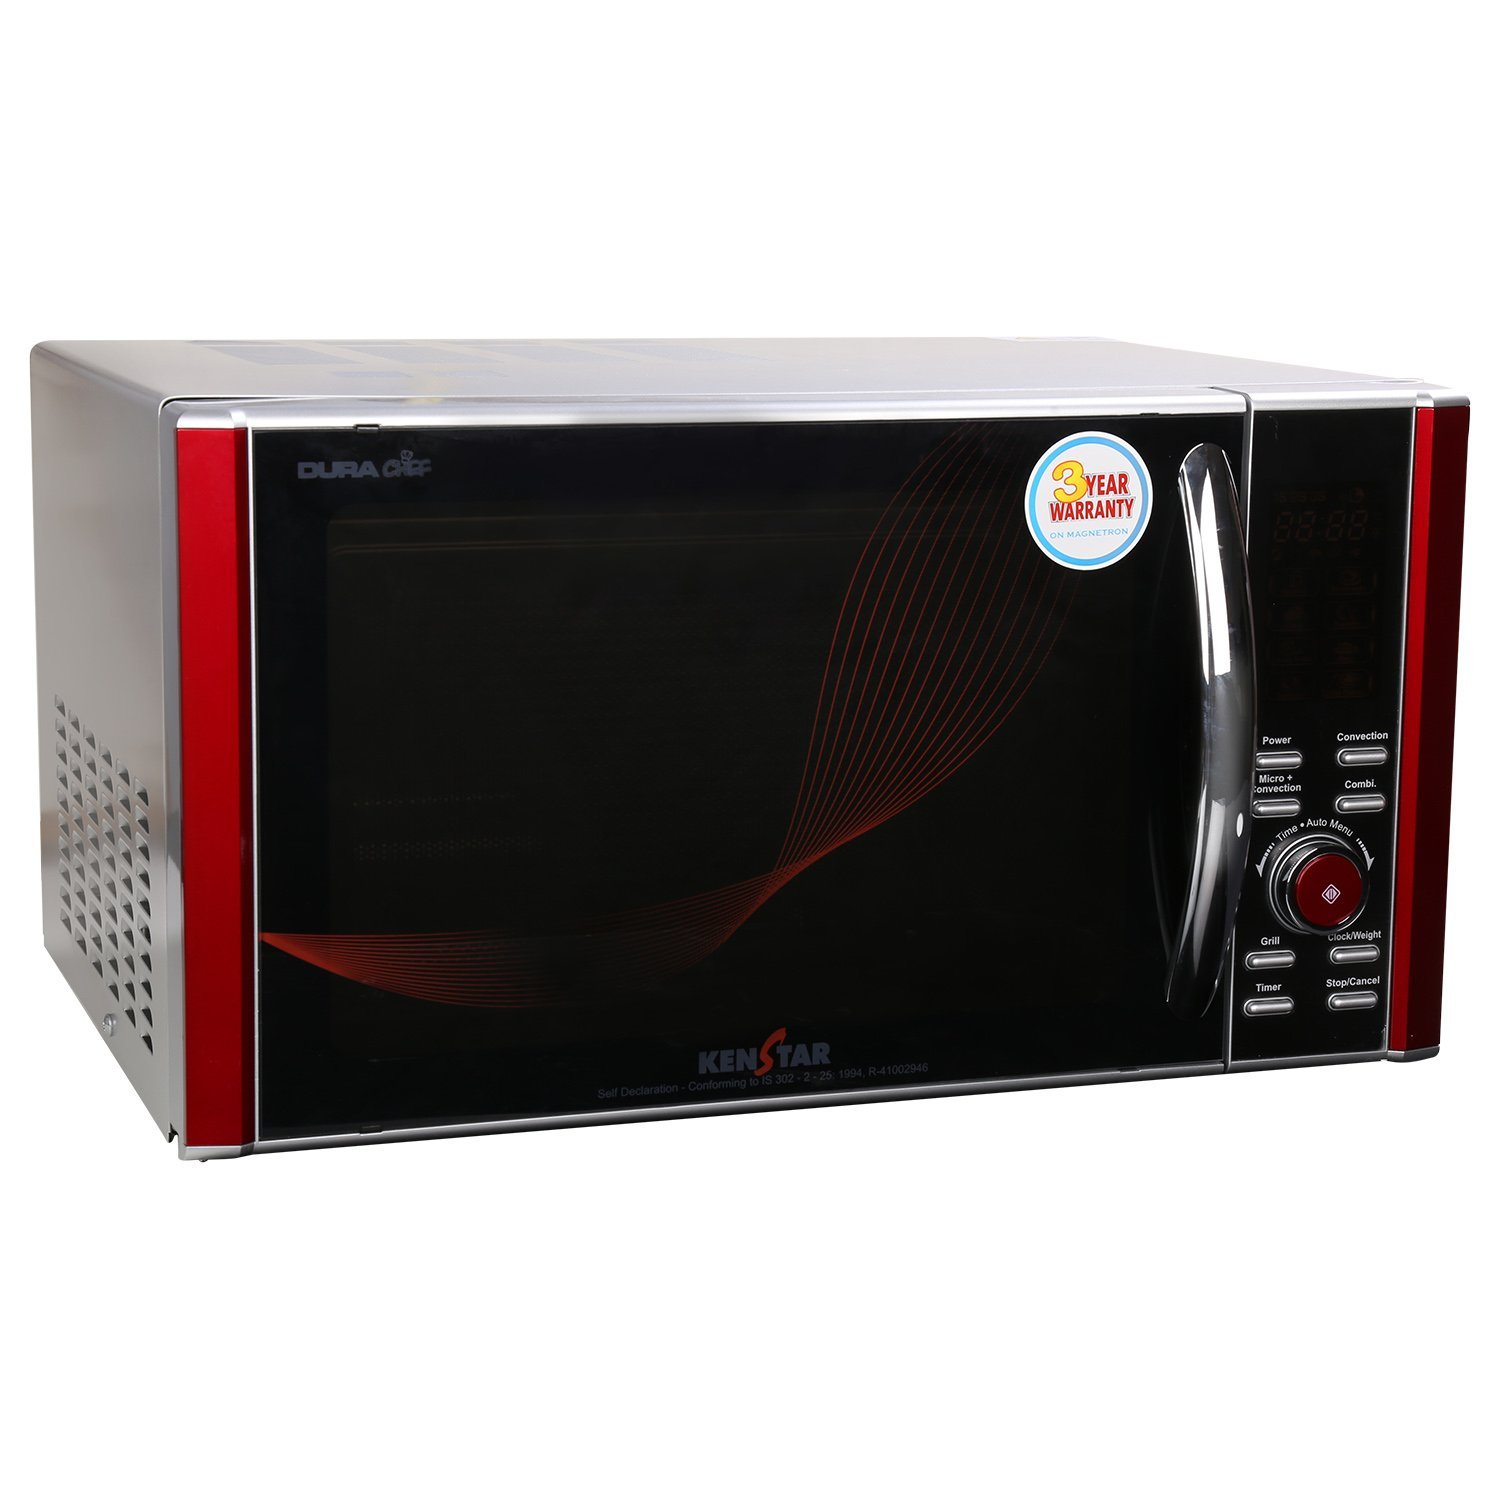 Microwave Oven from Kenstar Brand